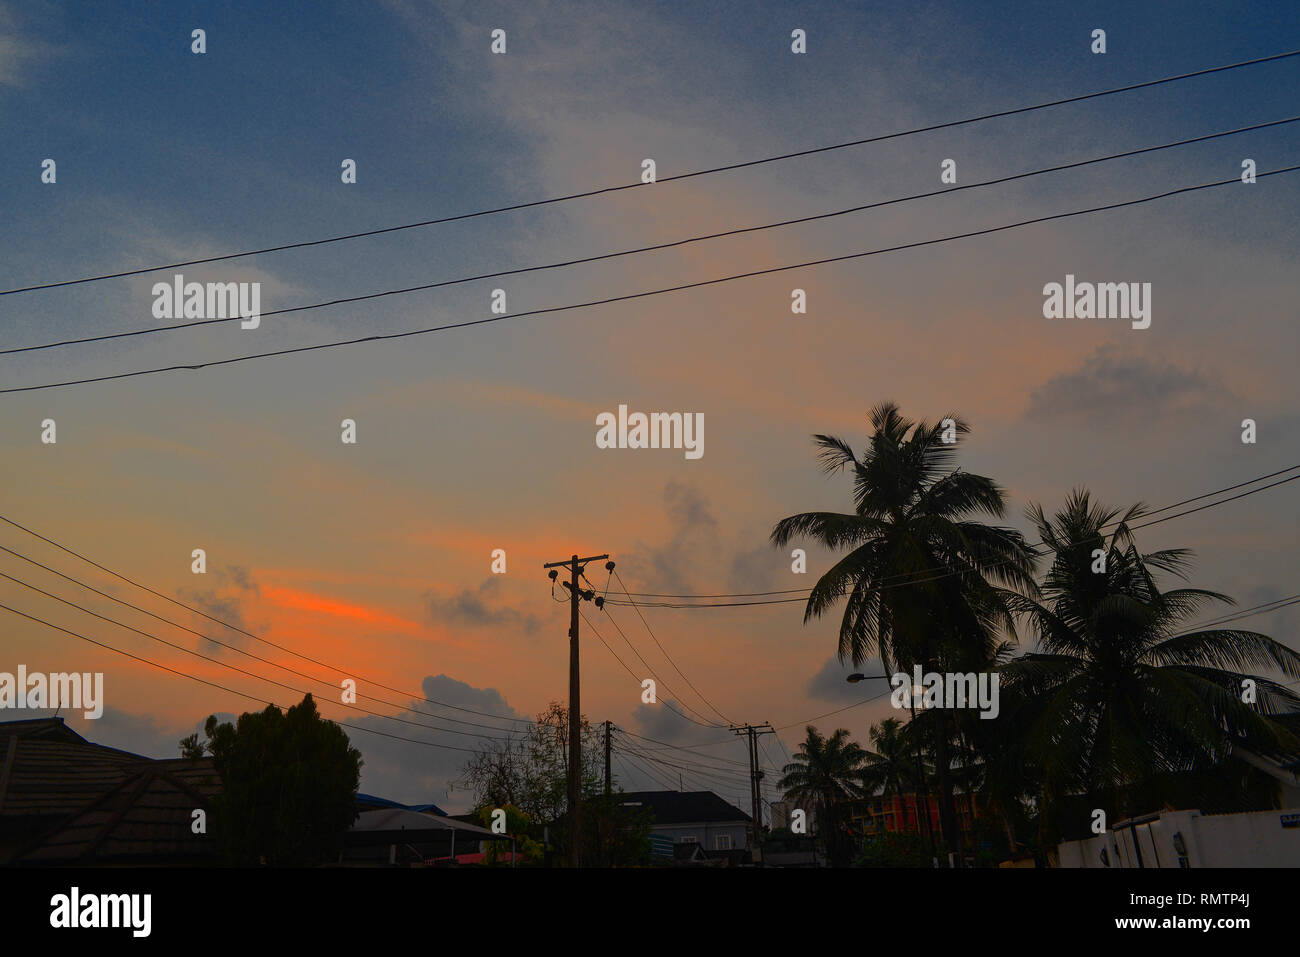 A Lagos Twilight with Electricity Poles and Wires - Stock Image